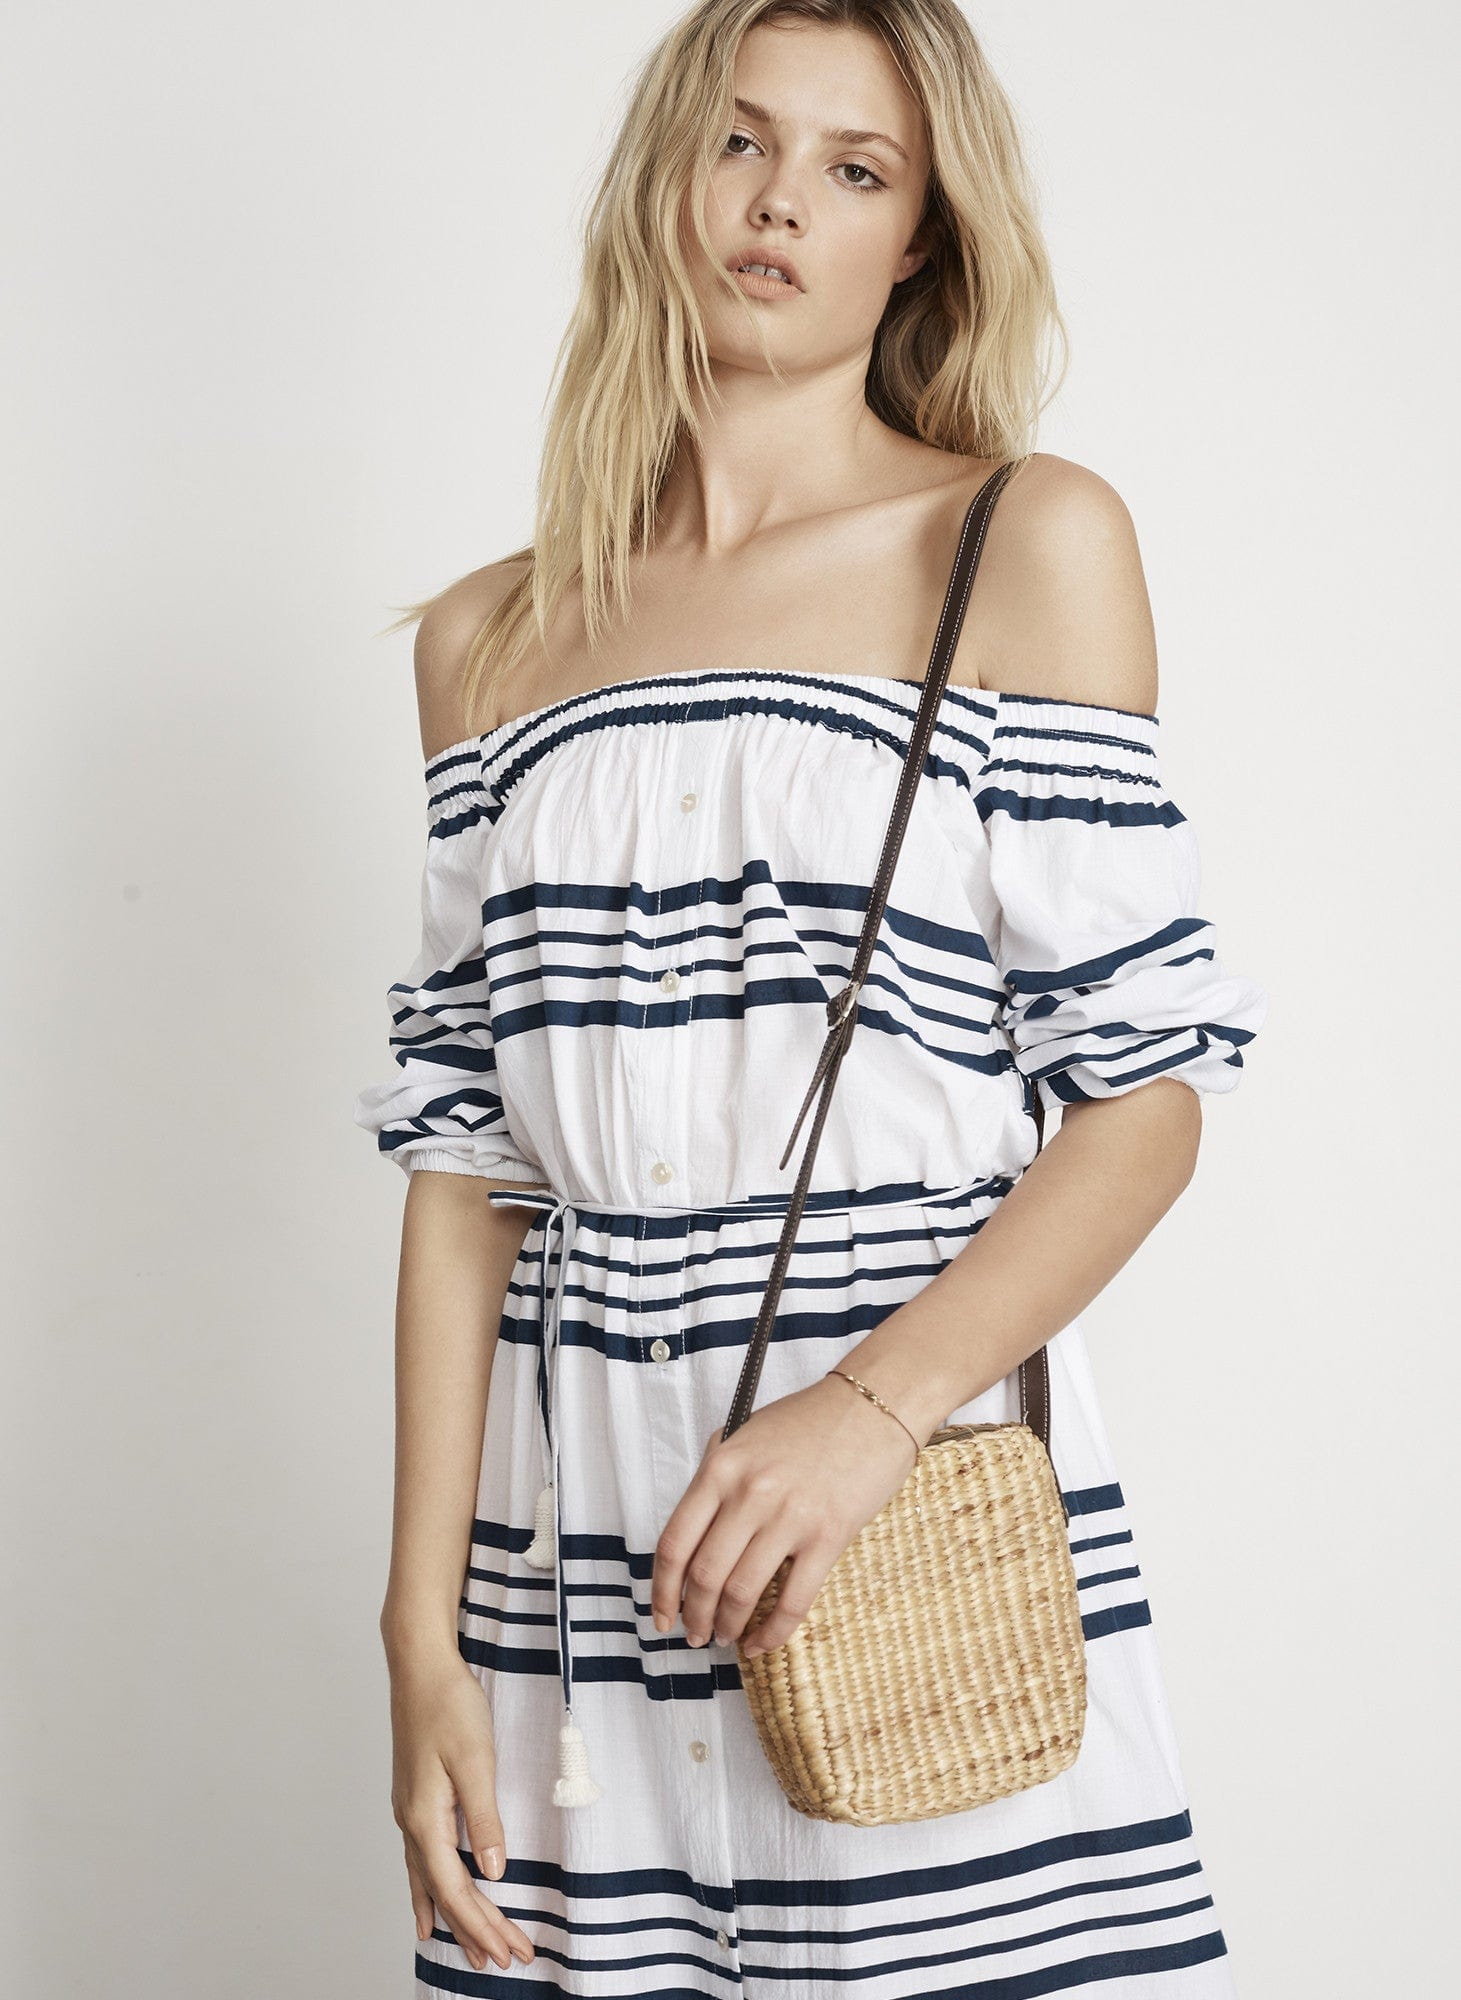 GOA STRIPE - SUN MAXI DRESS - FINAL SALE